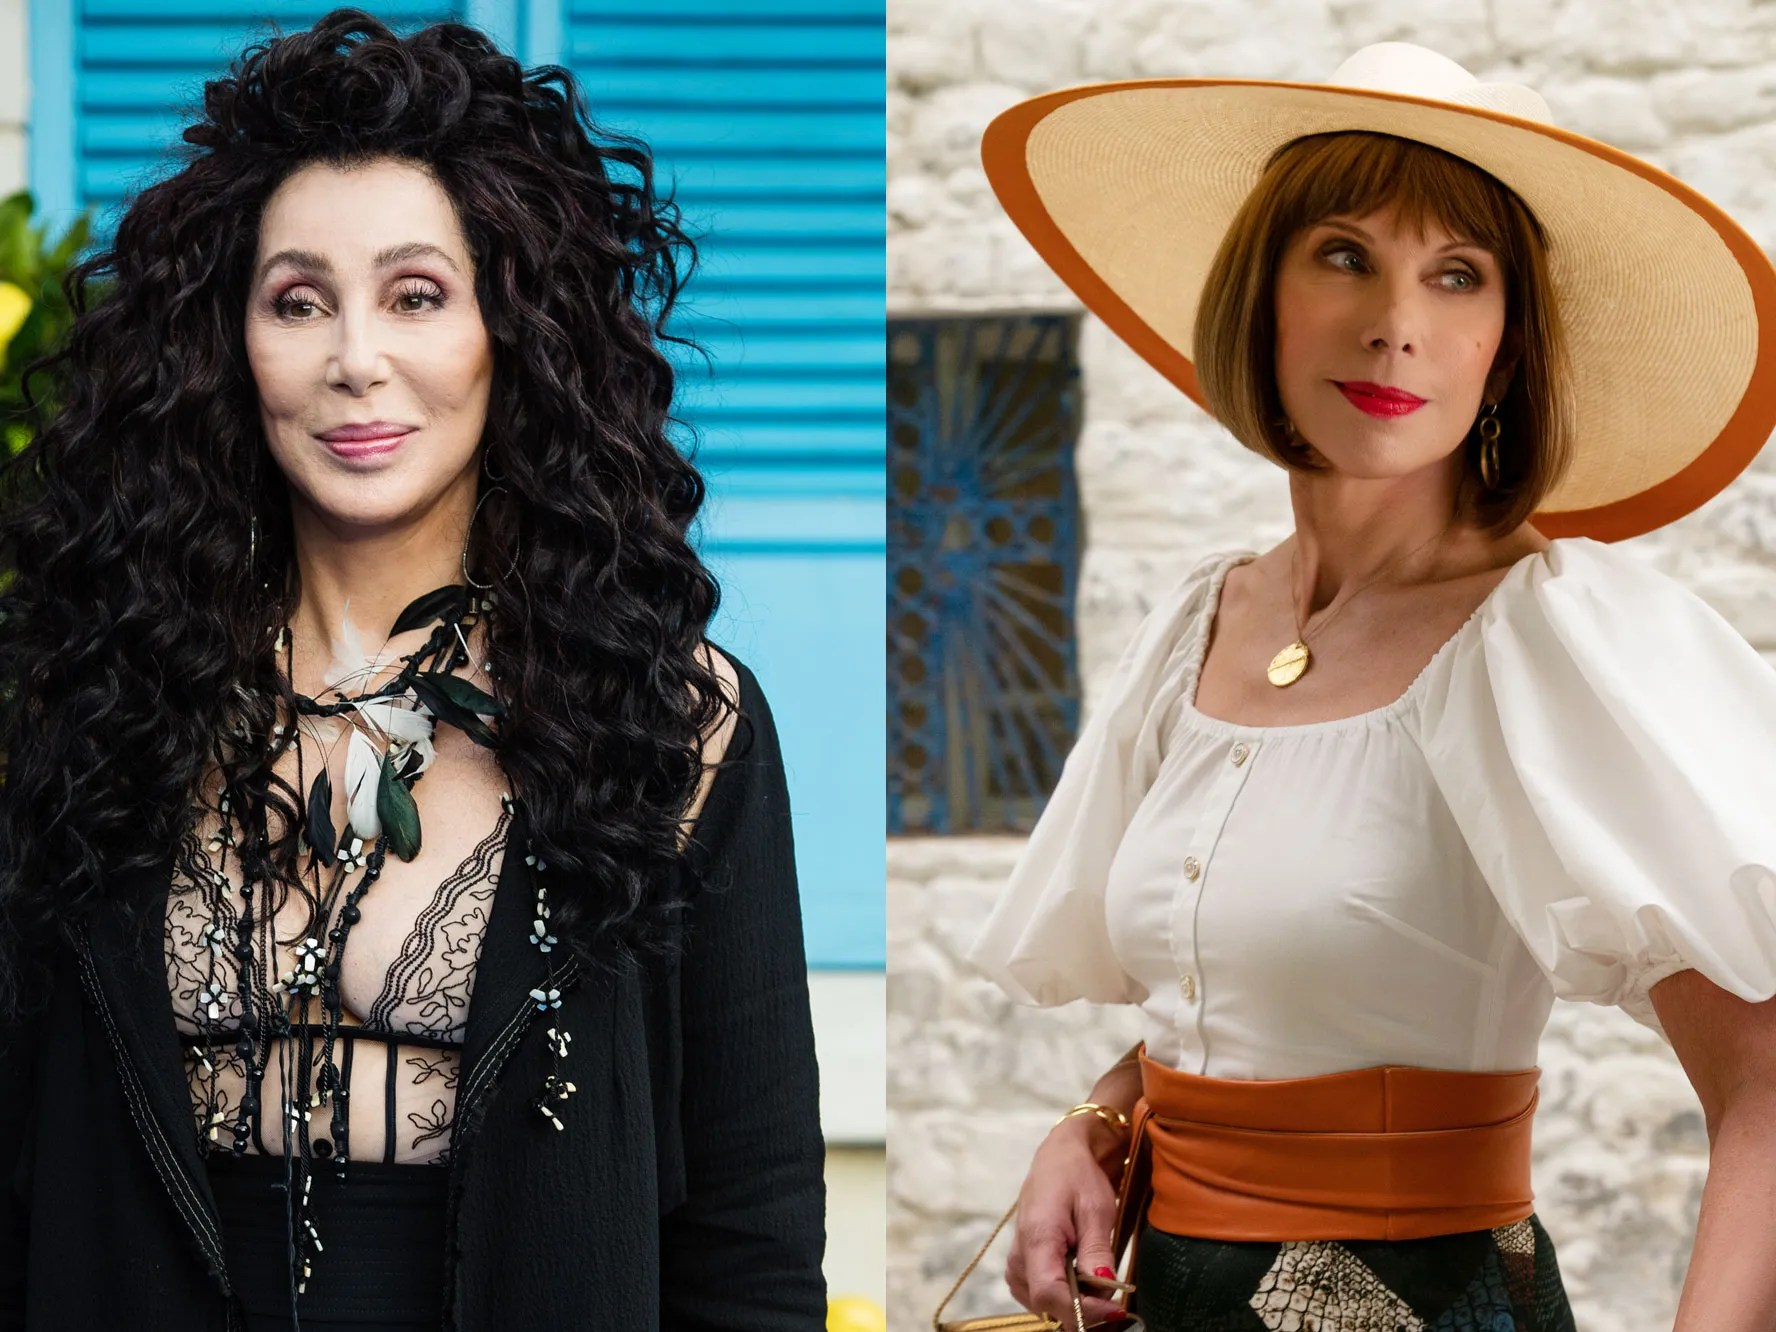 Mamma Mia Why Cher Chose Playing Meryl Streep S Mother Over Her Best Friend Vanity Fair